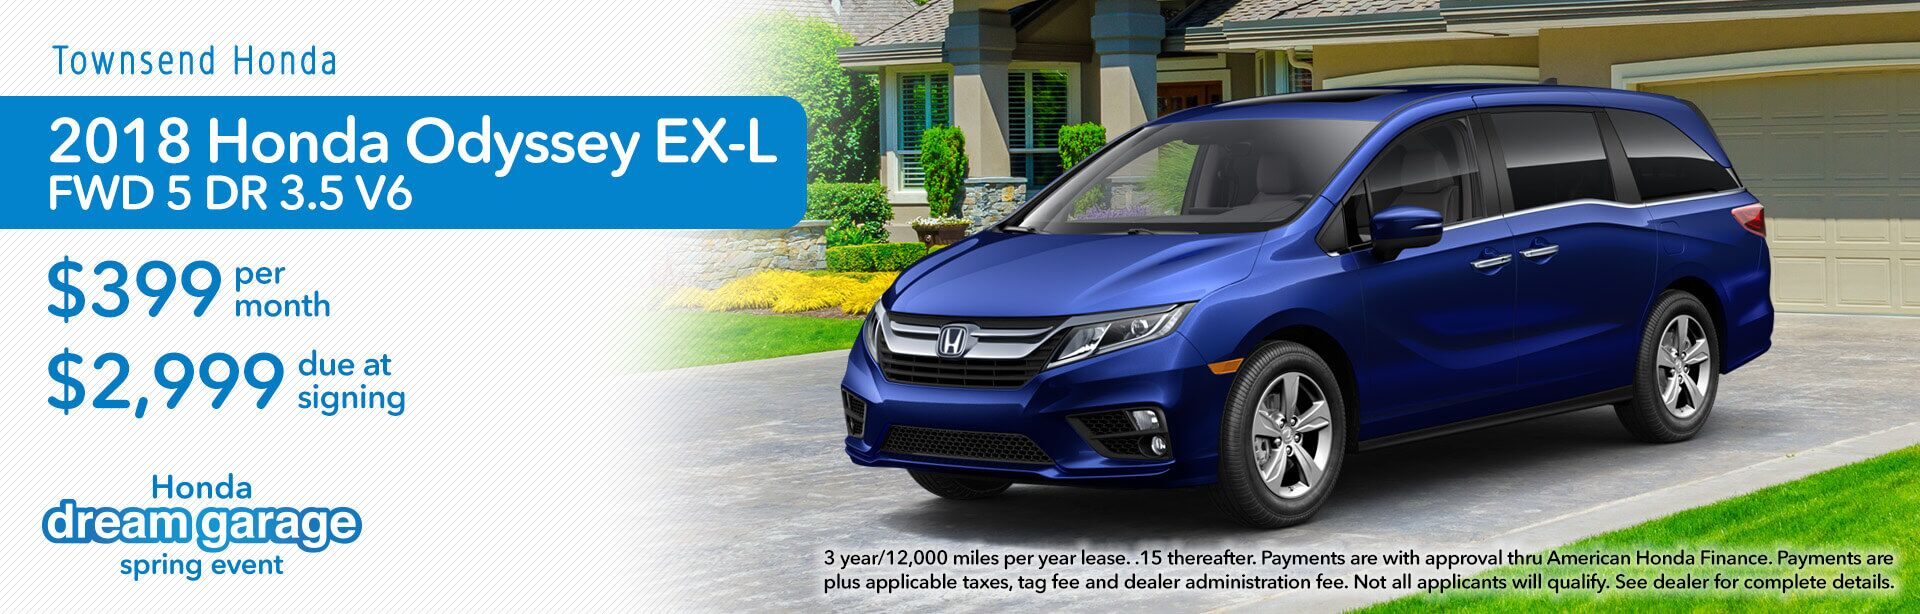 Lease special on 2018 Honda Odyssey EX-L in Tuscaloosa